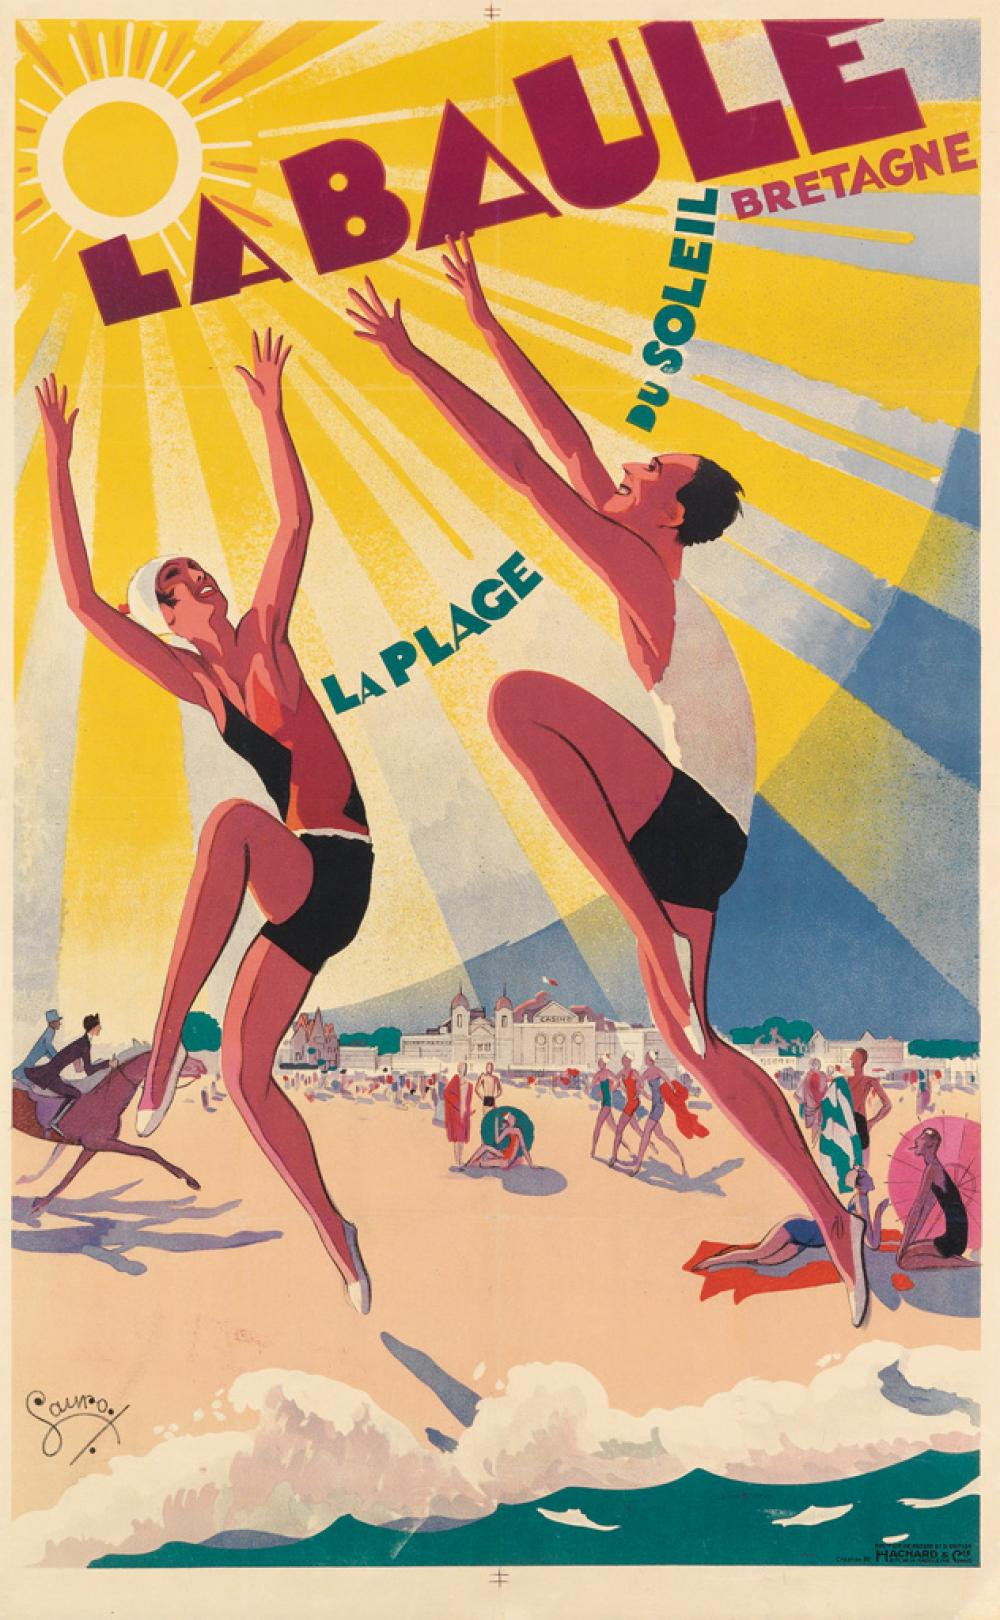 MAURICE LAURO (1878-?). LA BAULE. 1930. 39x24 inches, 100x62 cm. Hachard & Cie., Paris.